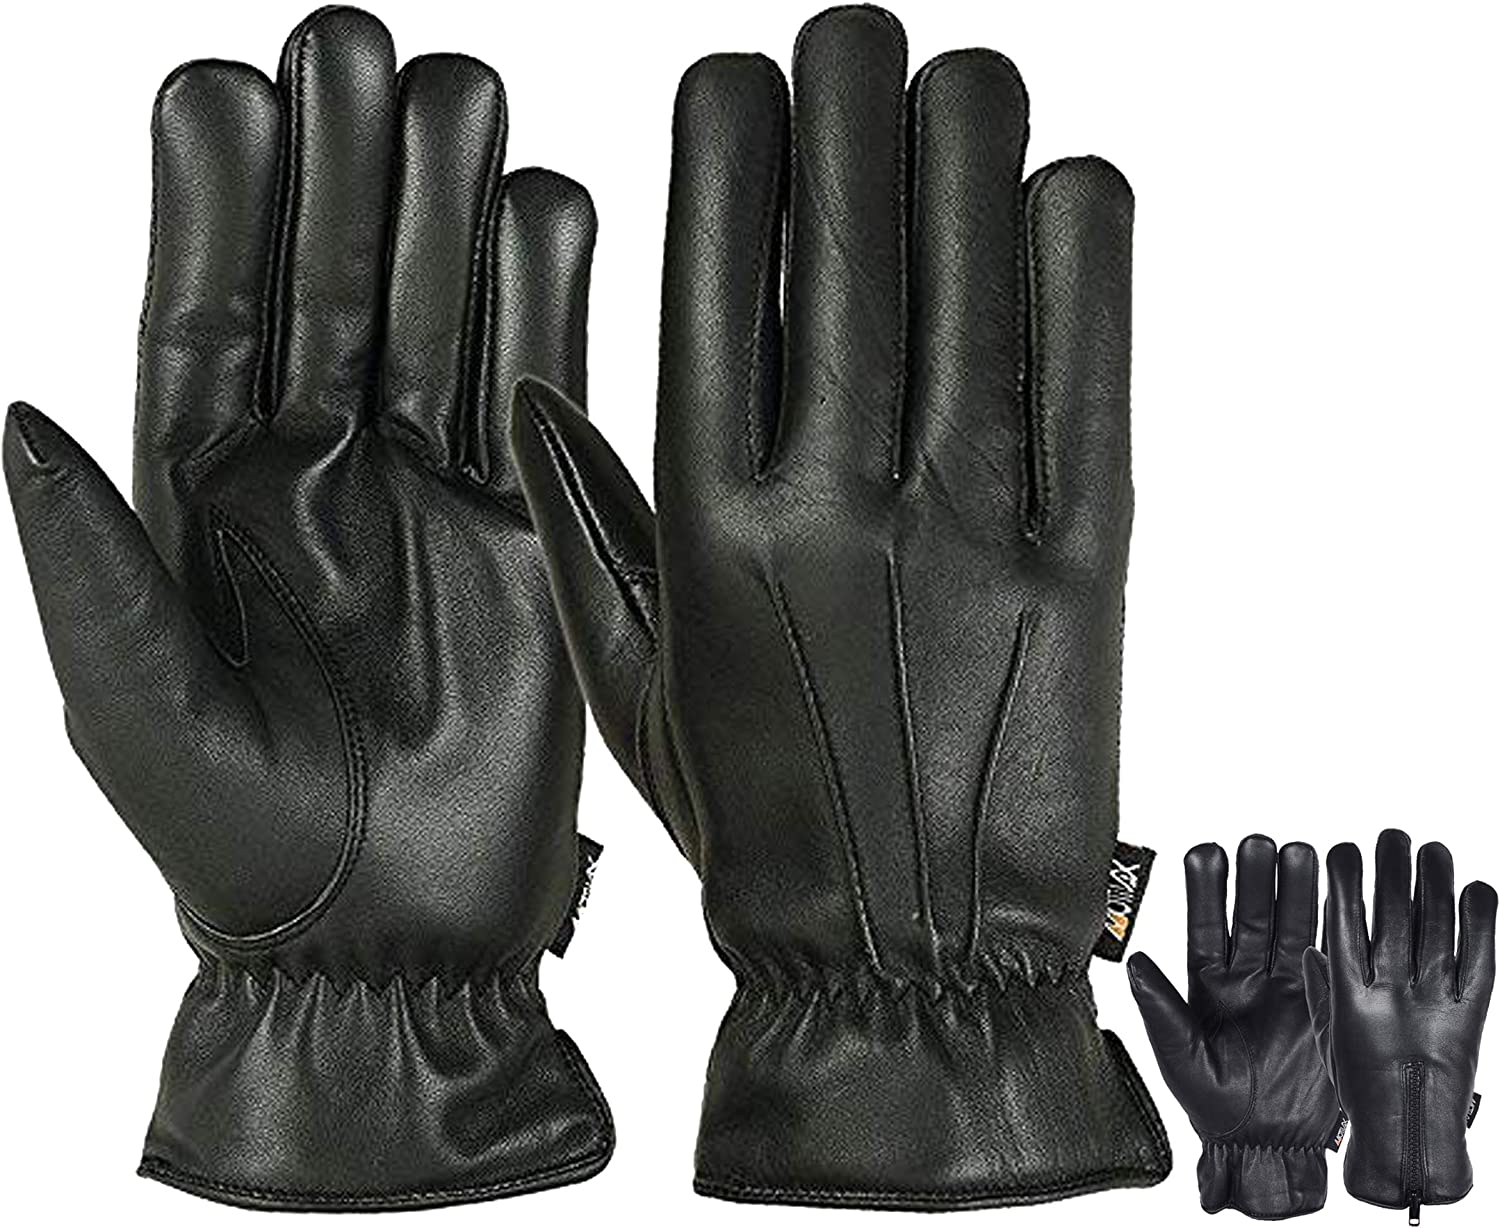 Mens Warm Winter Genuine Leather Gloves Motorcycle Driving Cold Weather Thermal Lining Glove